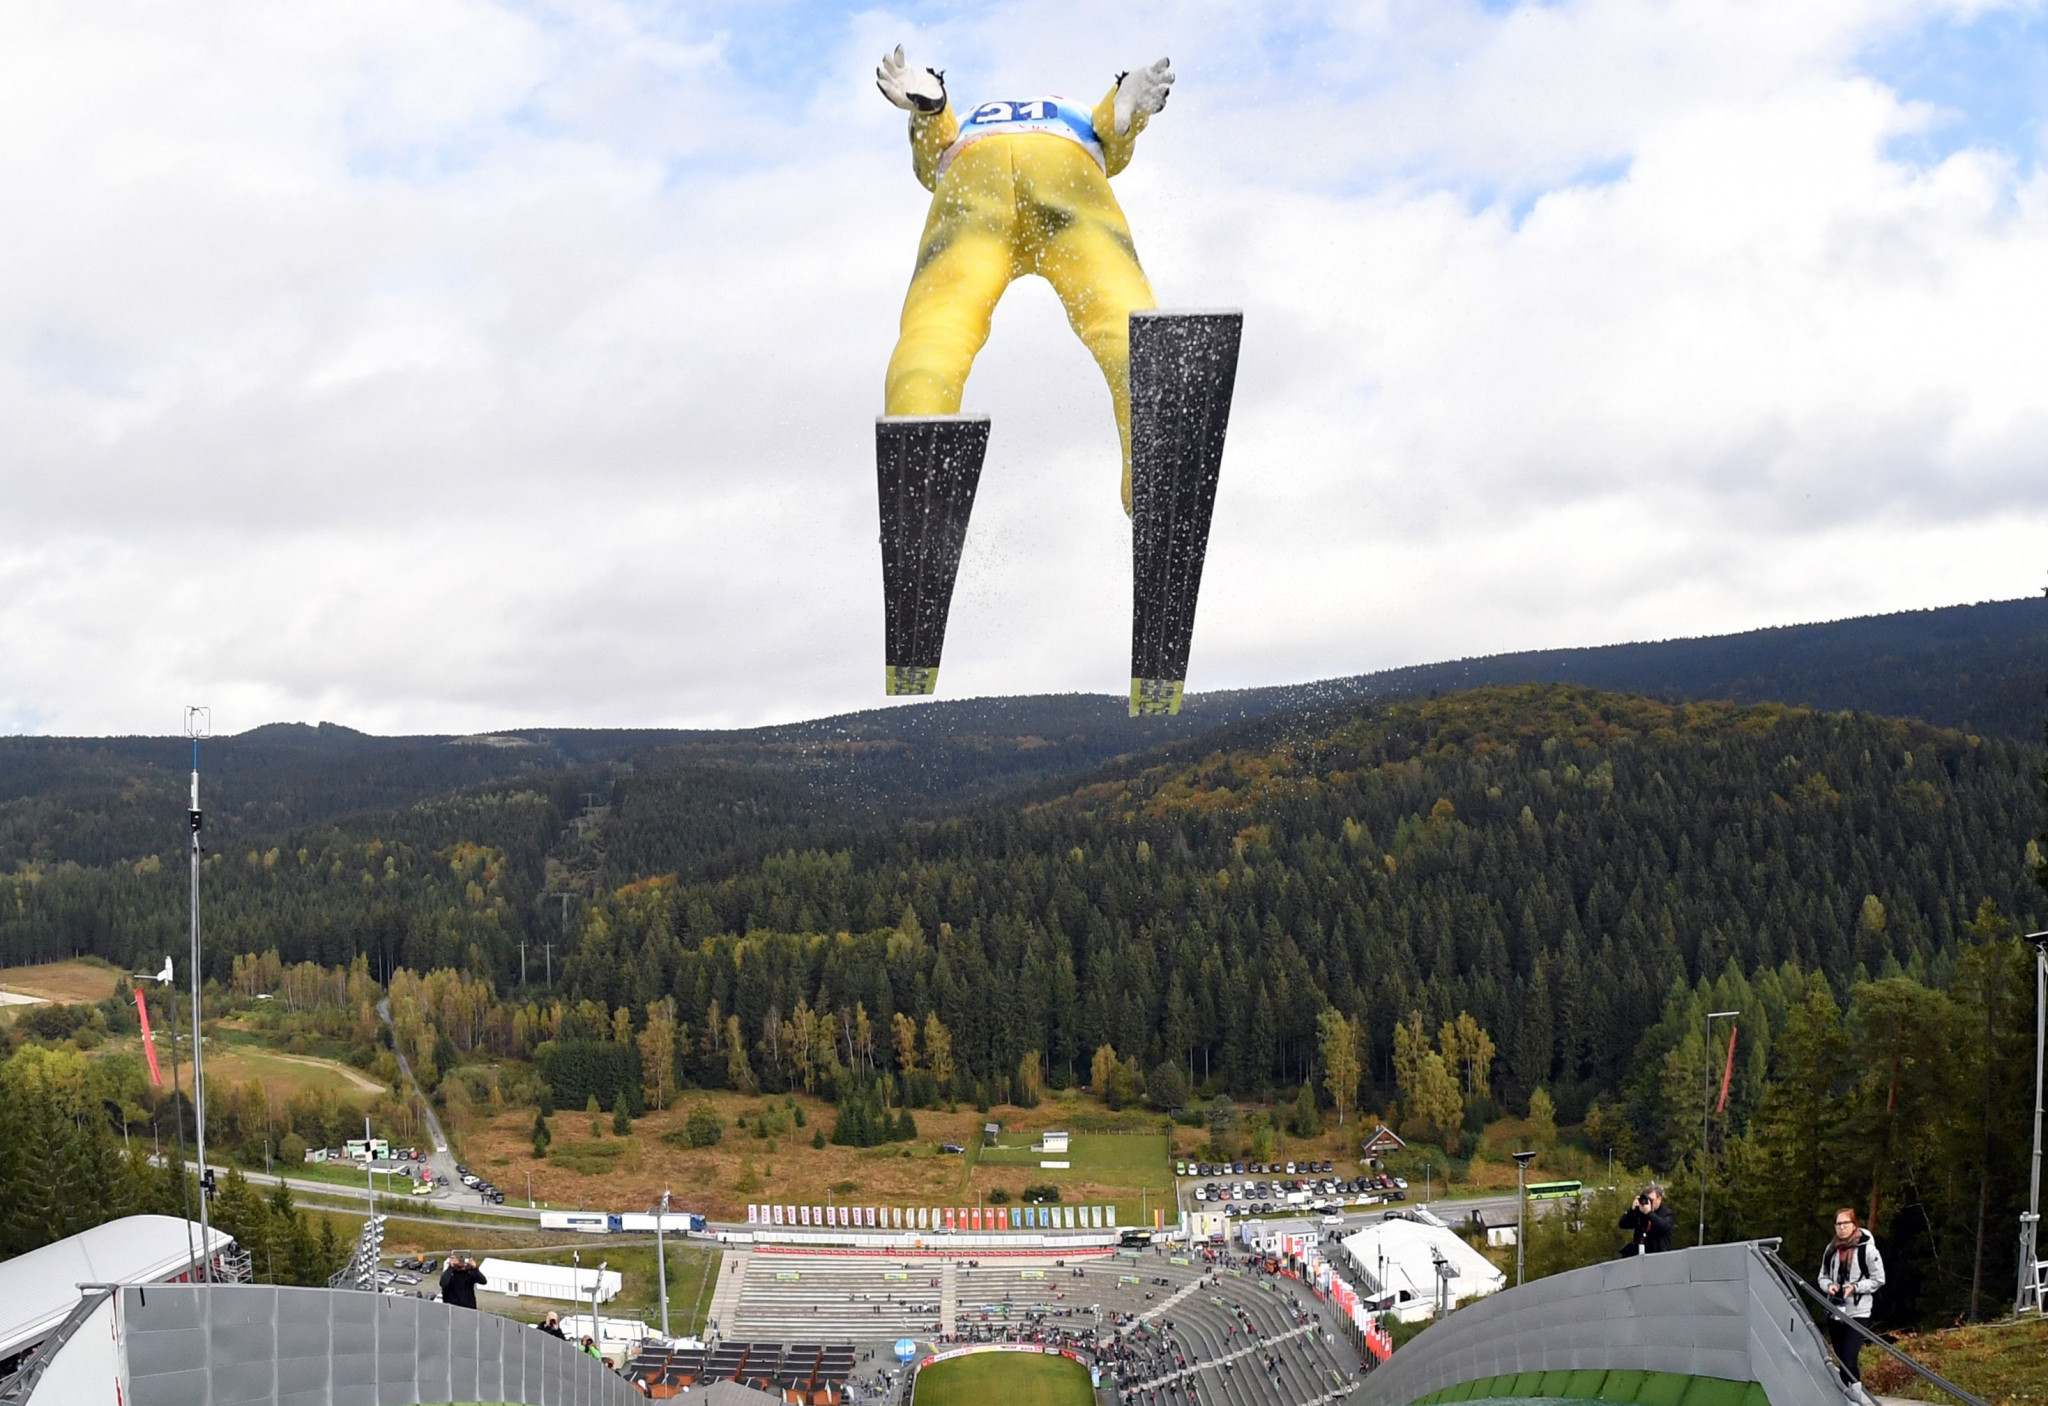 Nordic Combined World Cup Finals moved to Klingenthal after warm weather